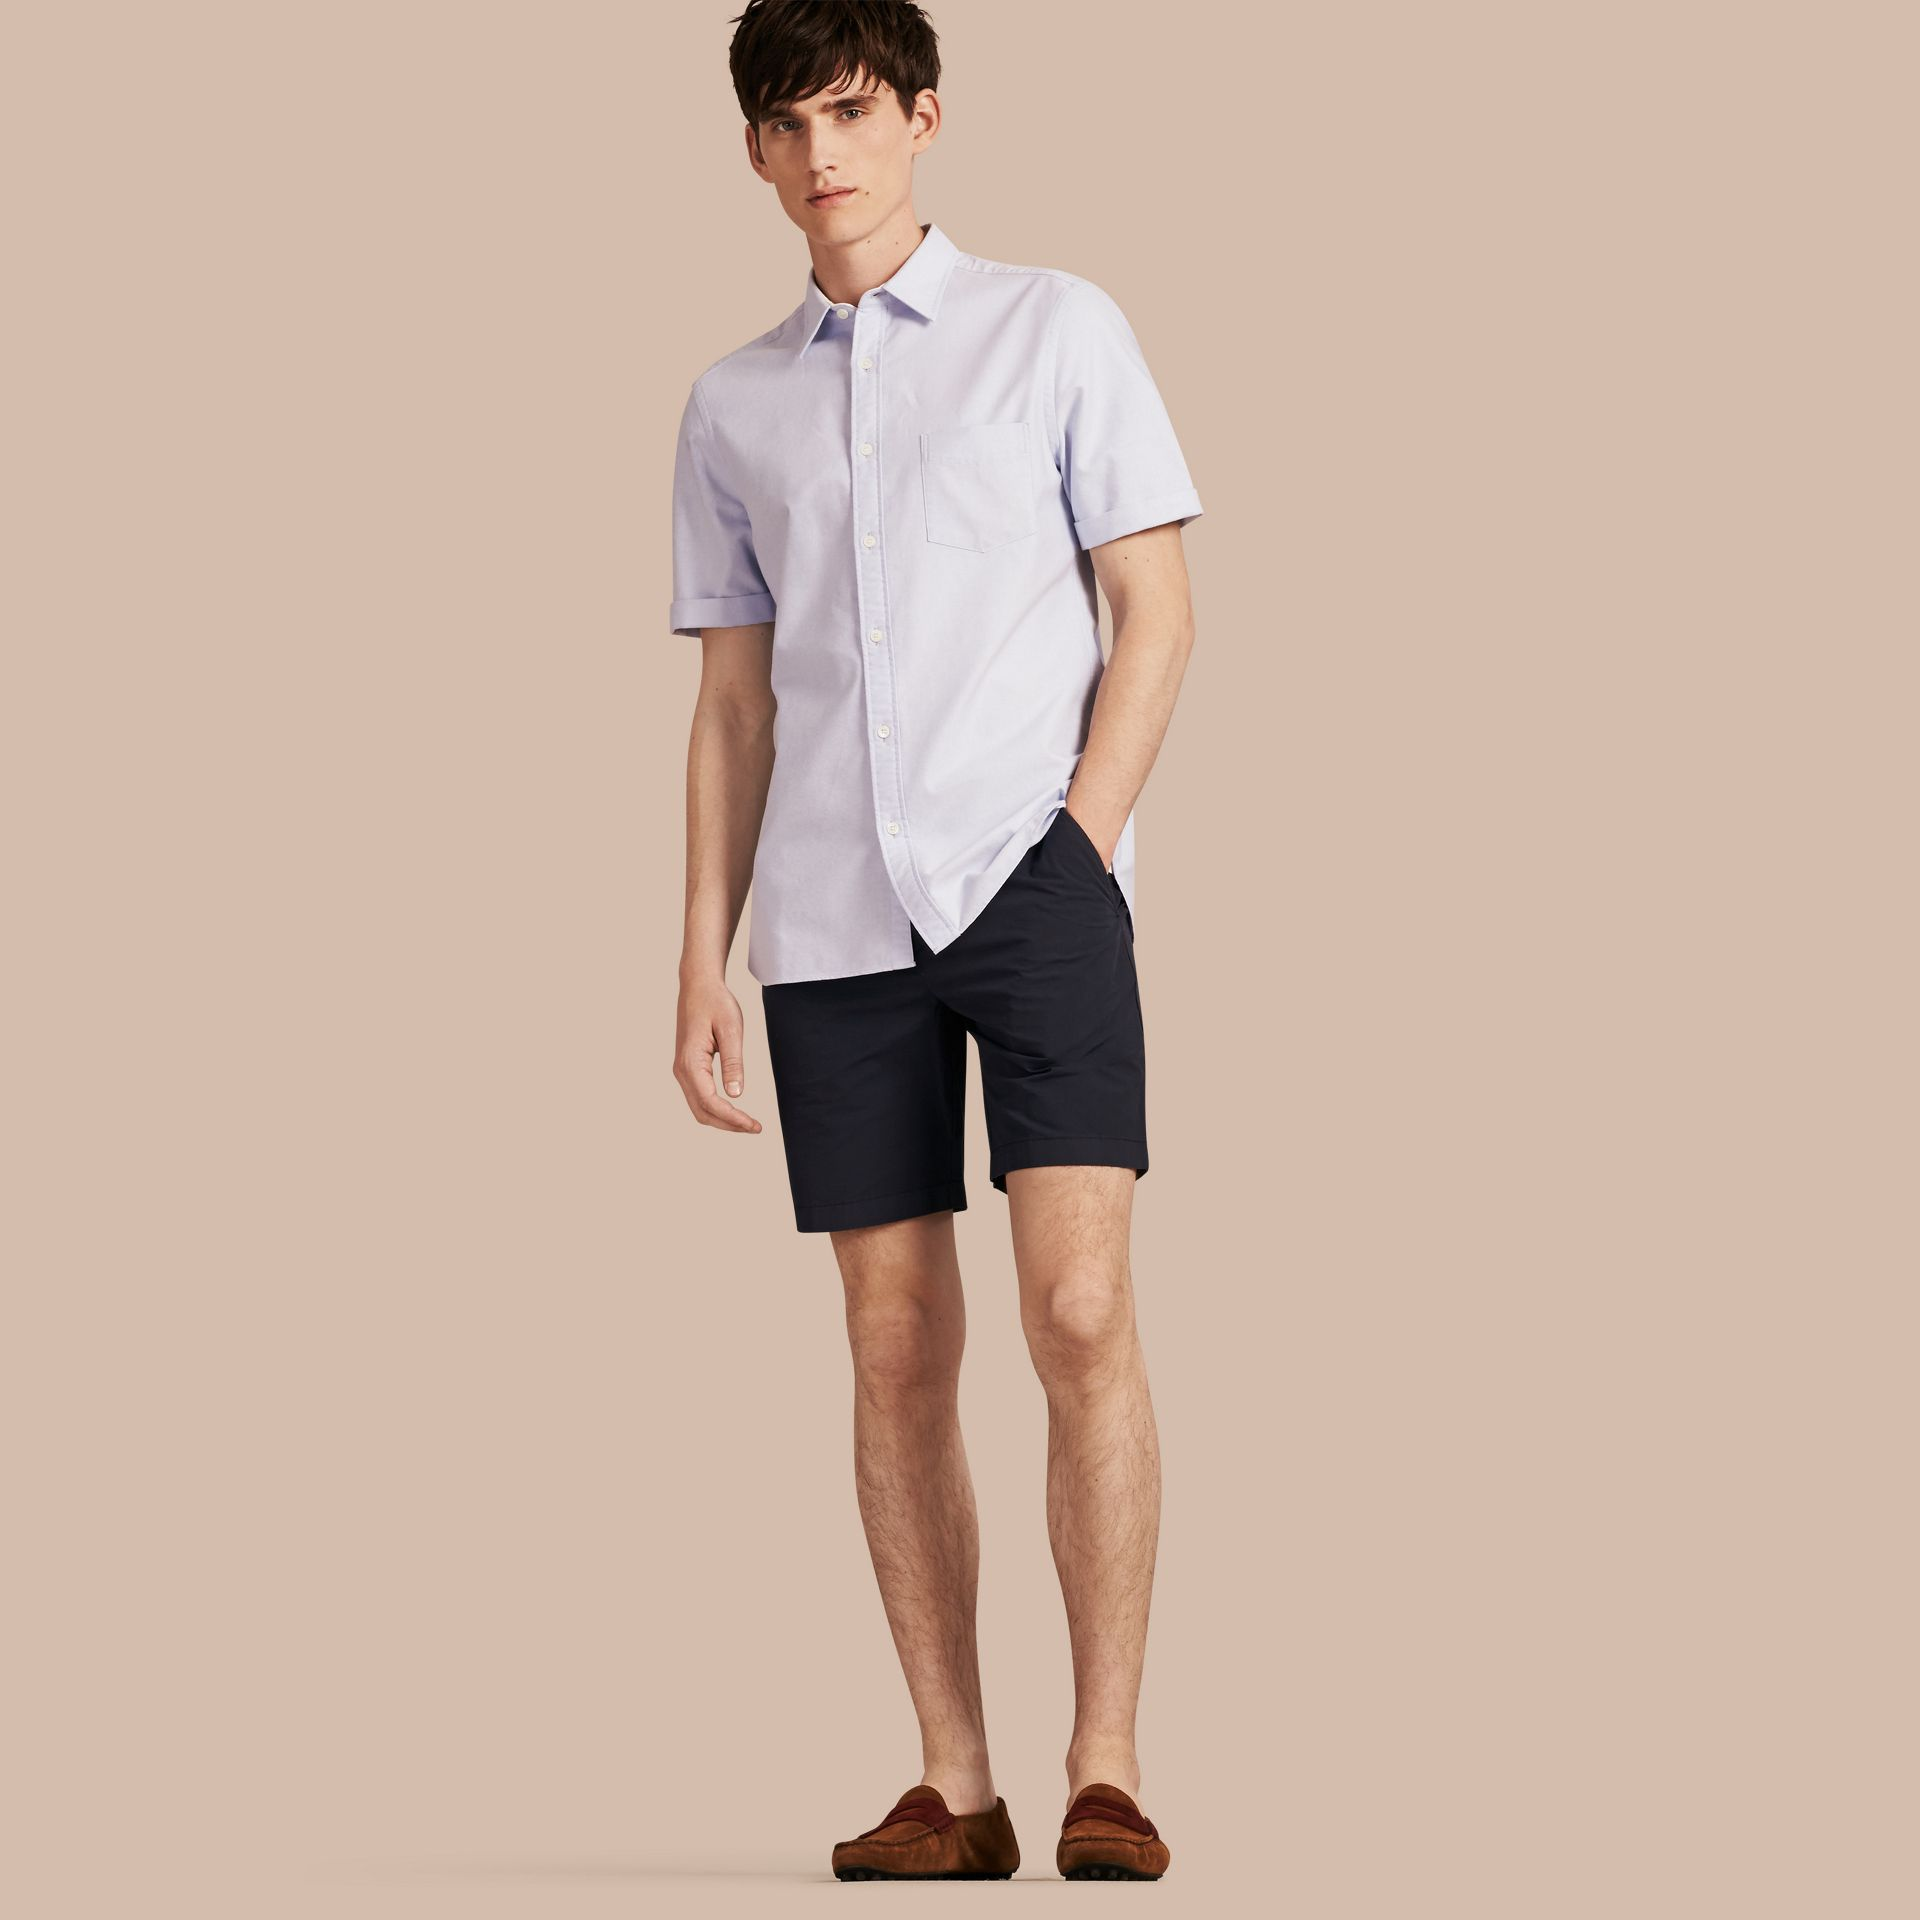 Indigo Cotton Poplin Chino Shorts Indigo - gallery image 1